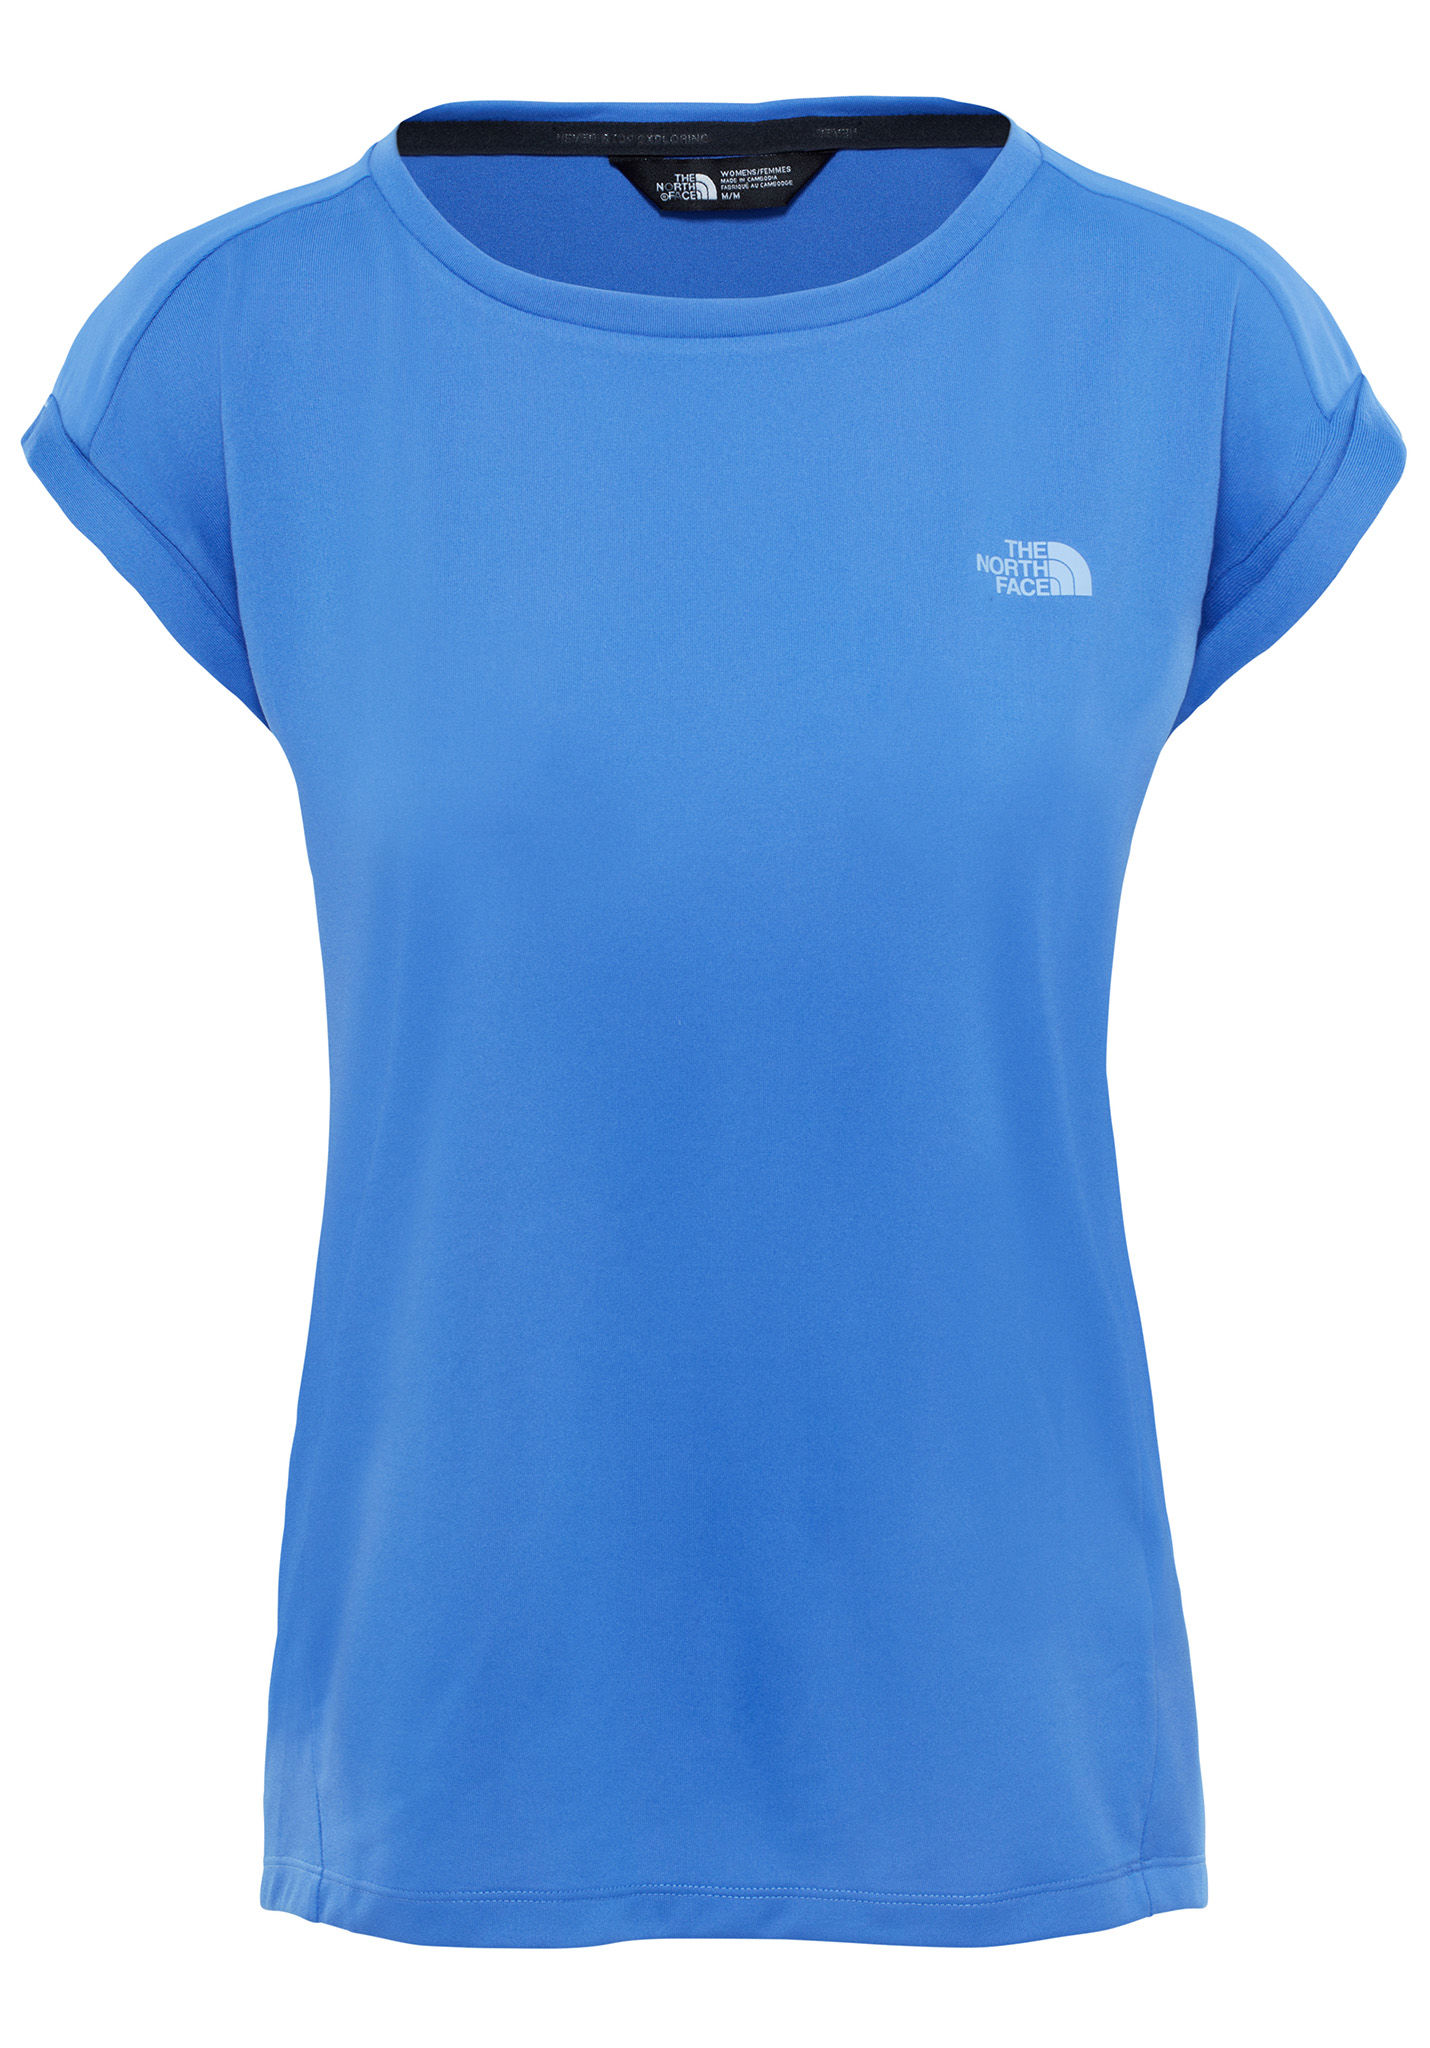 dea7f671b061fe THE NORTH FACE Tanken - T-Shirt für Damen - Blau - Planet Sports